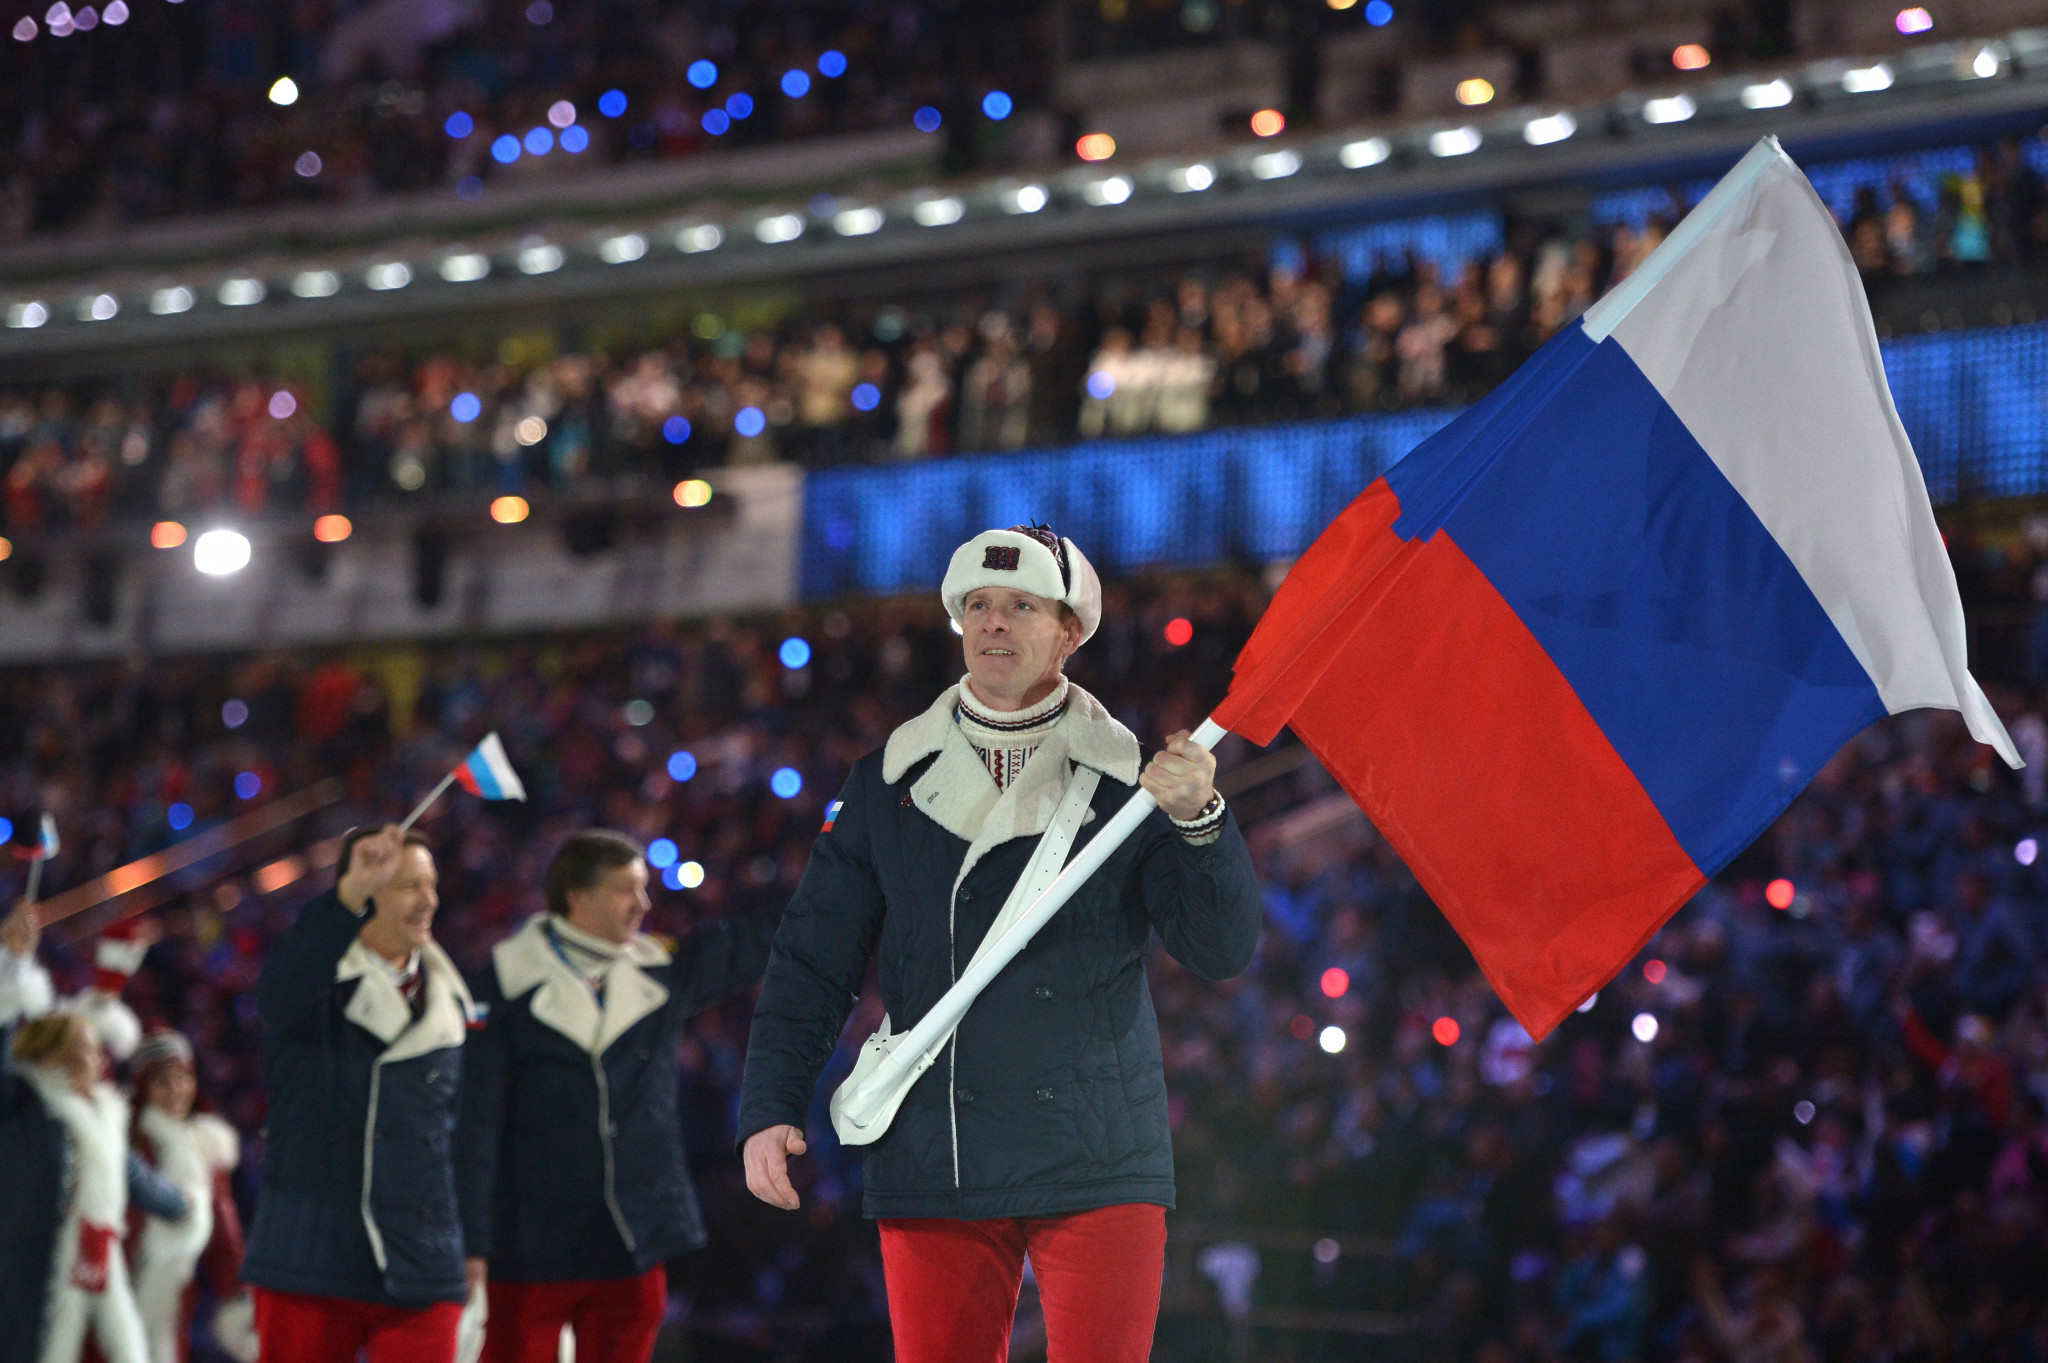 Designs are currently being drawn up to determine Russian kit at Pyeongchang 2018 ©Getty Images